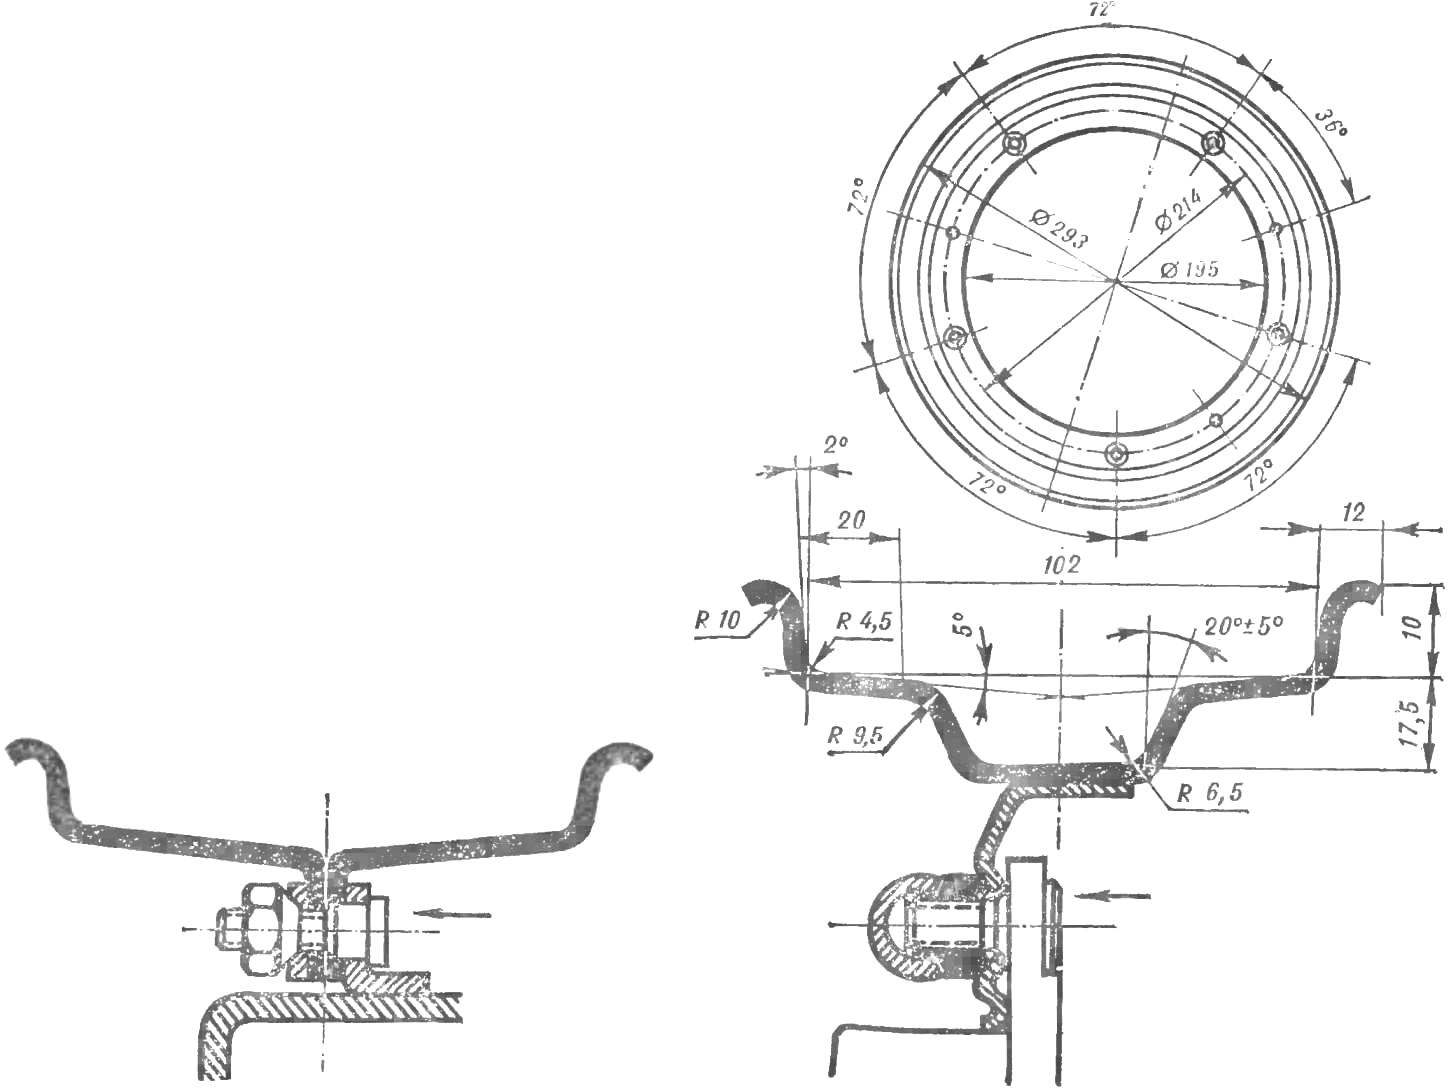 Fig. 5. Dimensions of wheel rim tire 5.00-10 and its fastening.